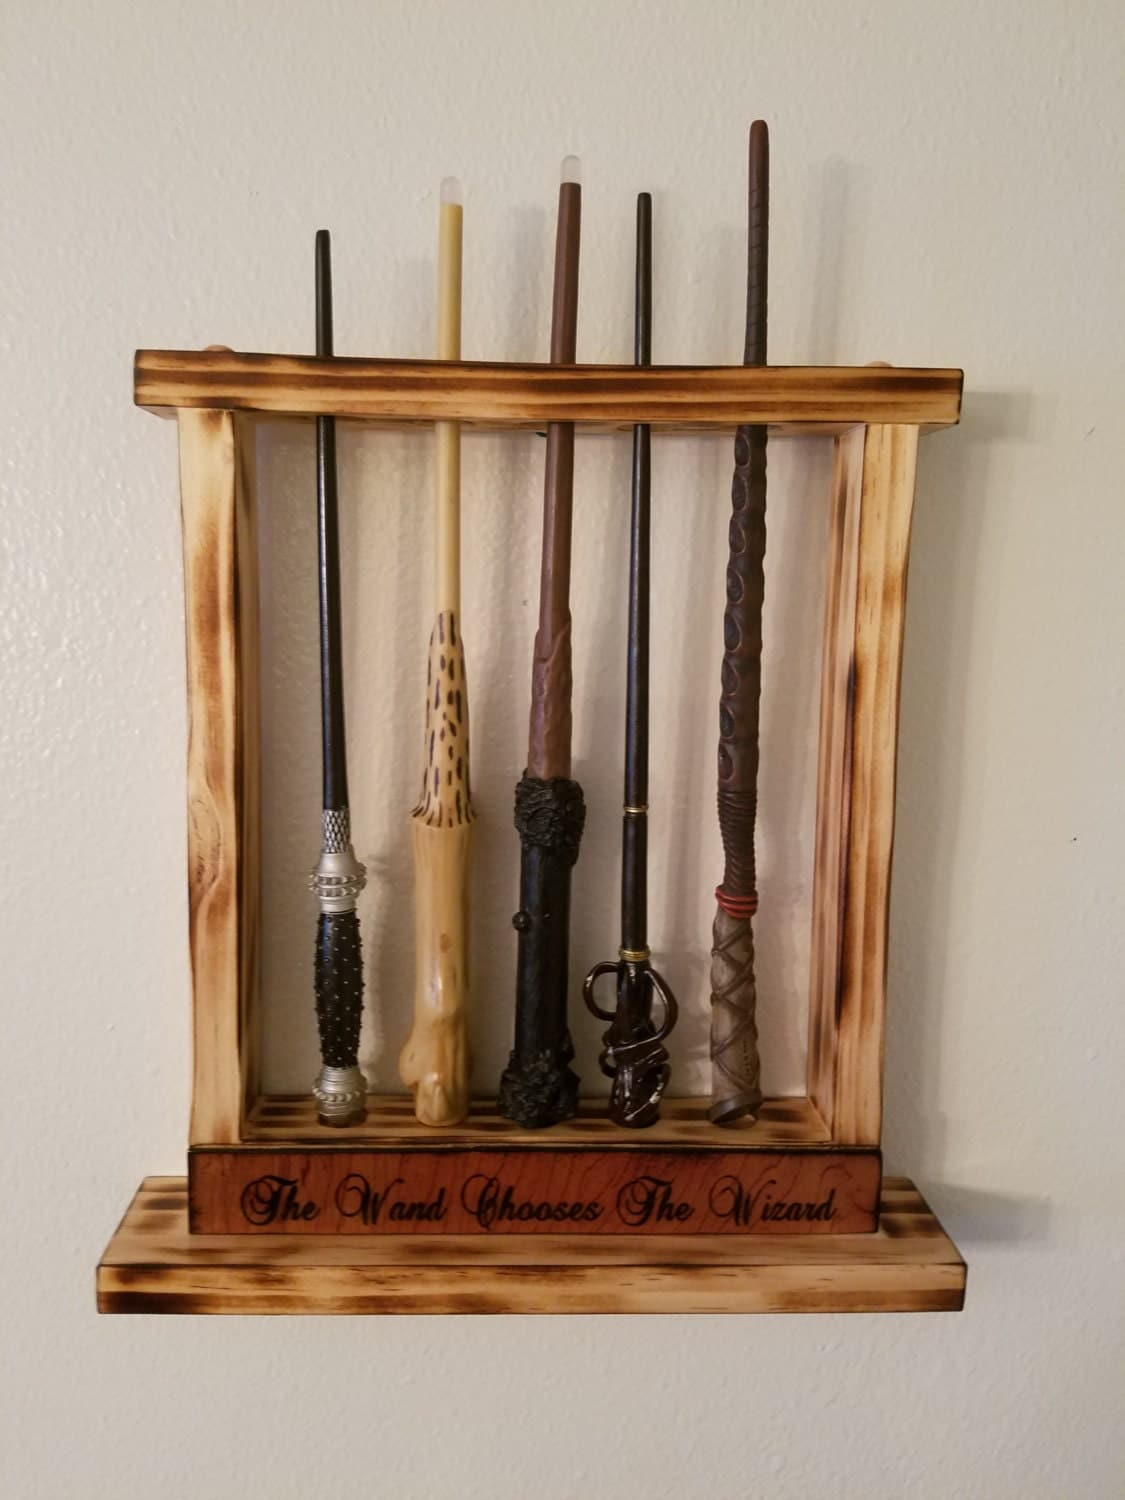 harry potter wand chooses the wizard holds 5 wands wall. Black Bedroom Furniture Sets. Home Design Ideas